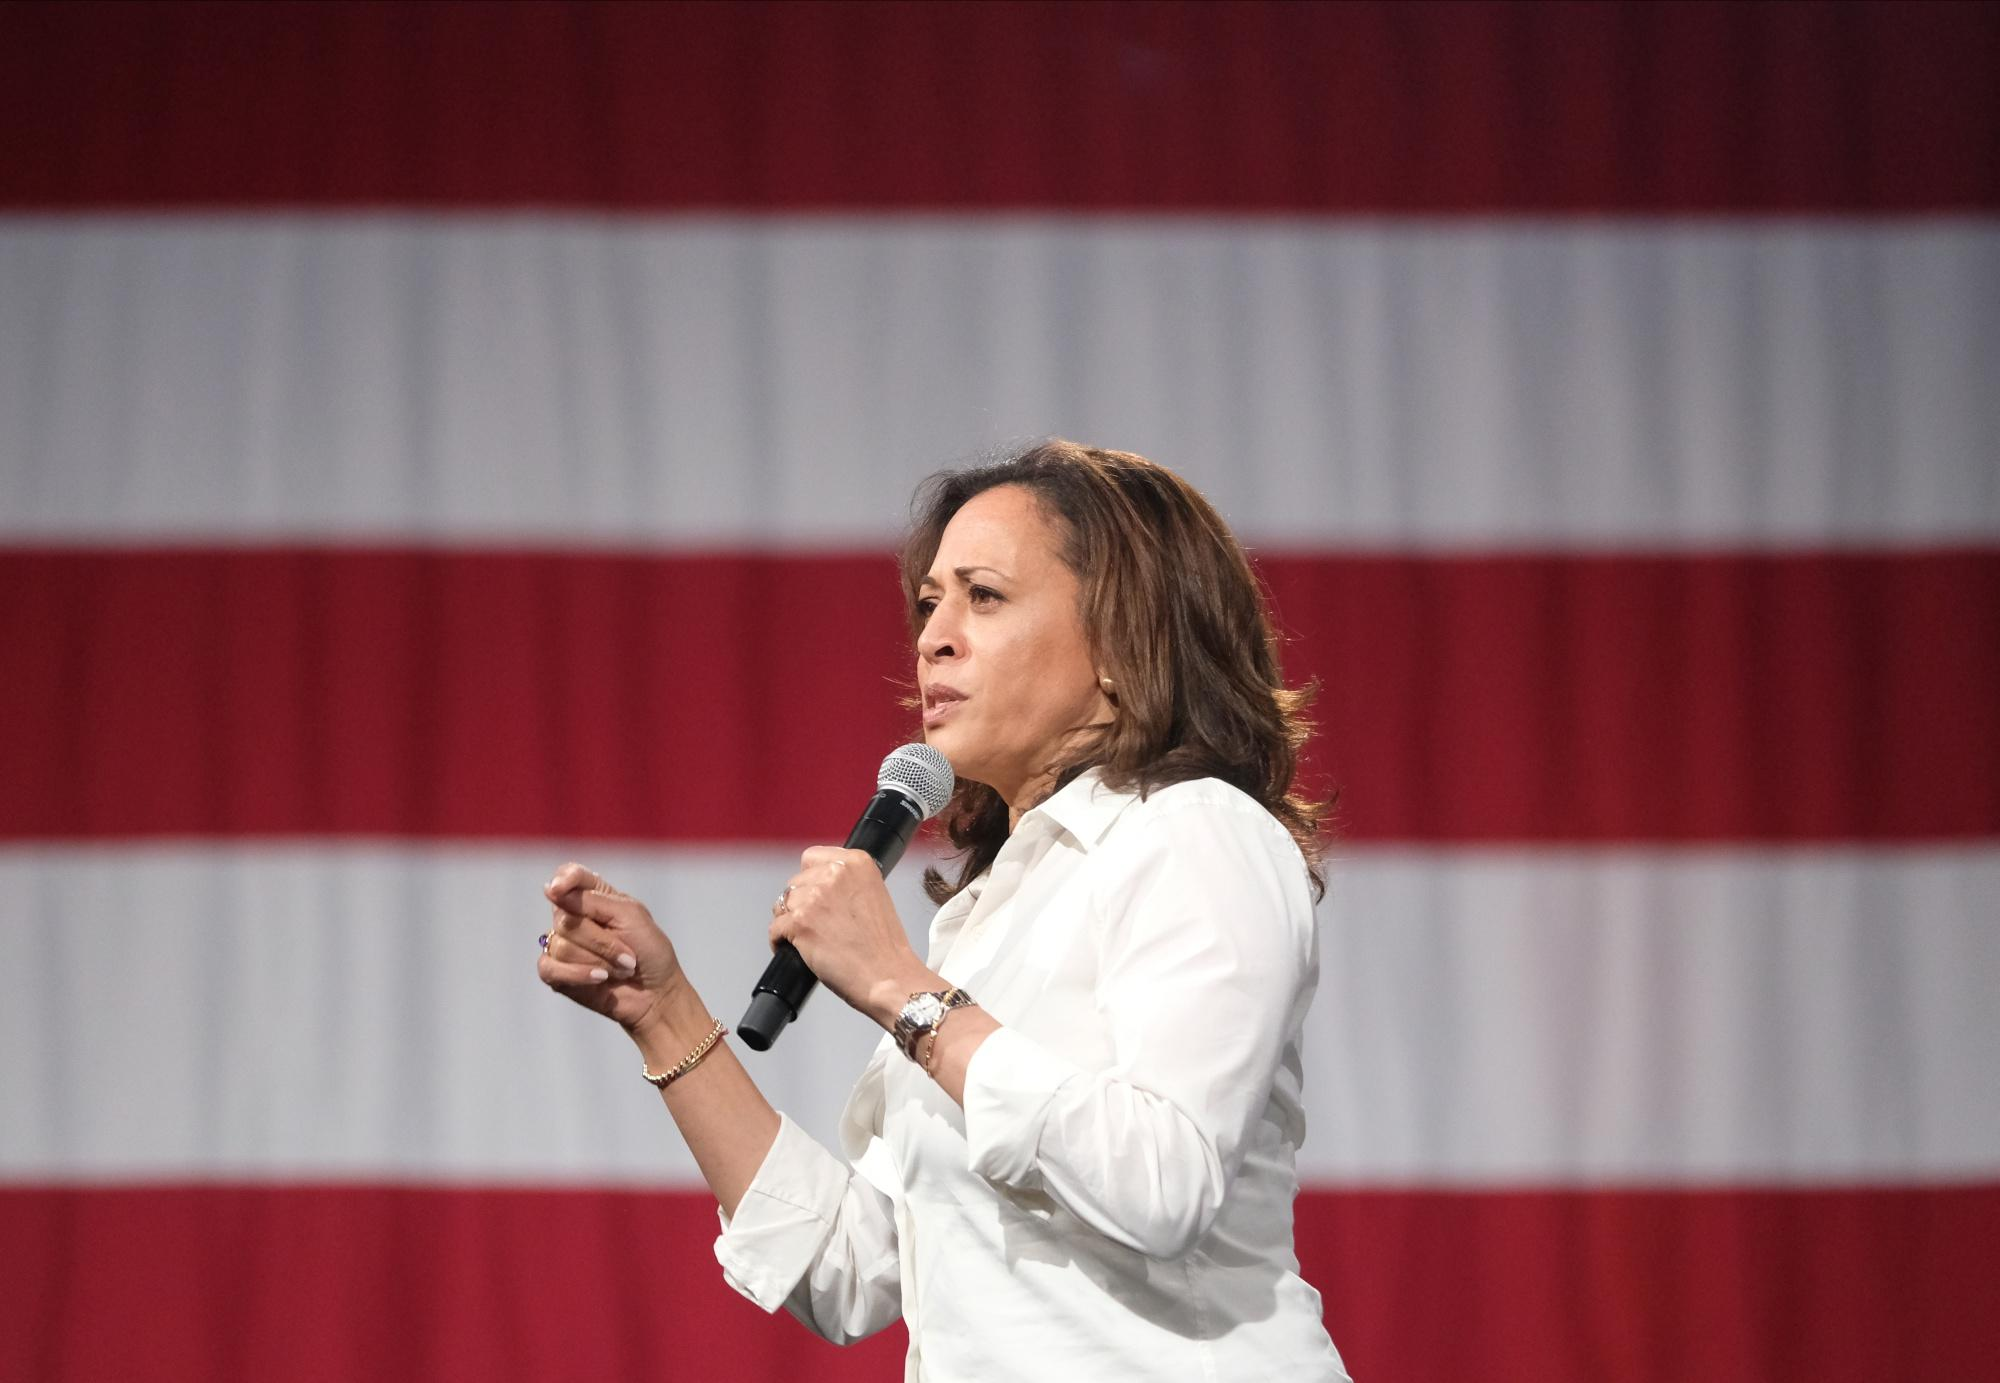 New poll of Democratic candidates has awful news for Kamala Harris